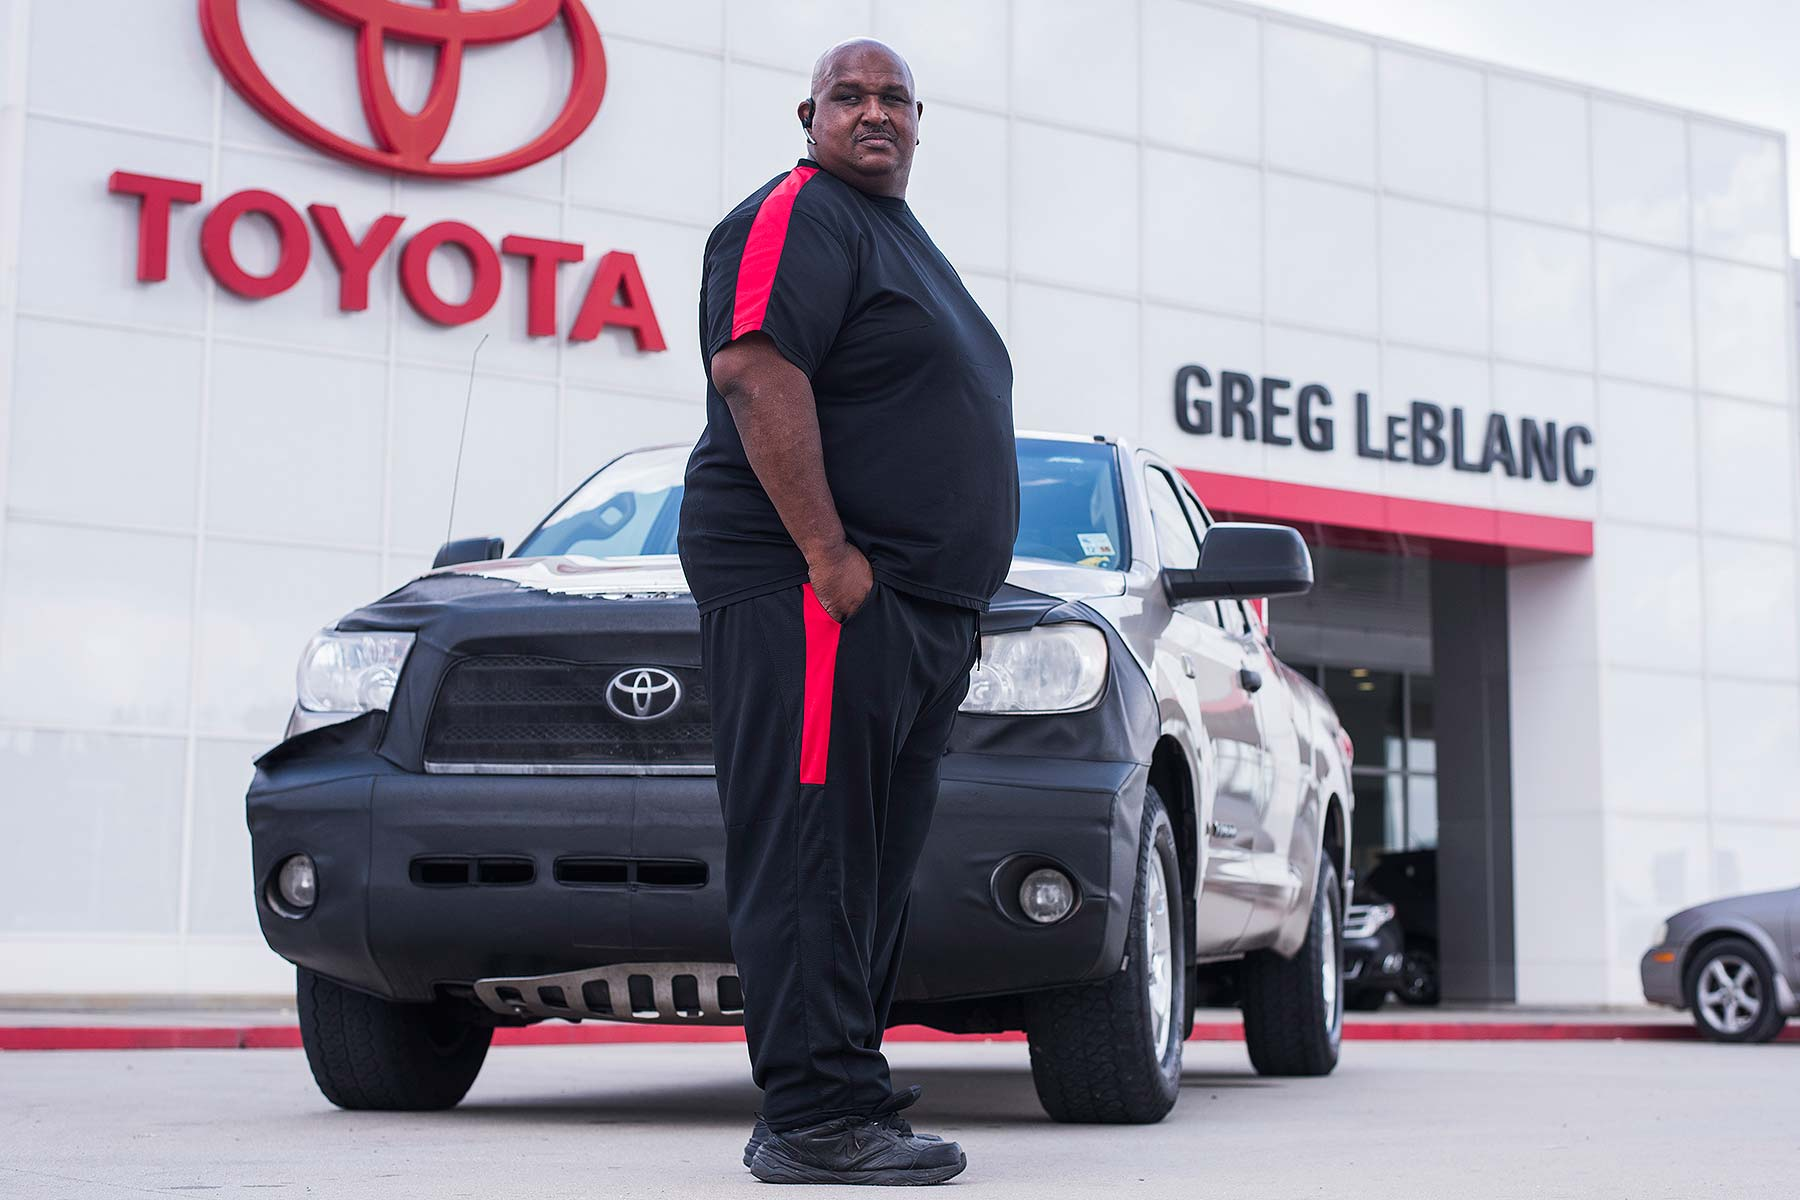 toyota single guys Come in to big two toyota of chandler serving the phoenix metro area with new 2018 toyota & used car deals.